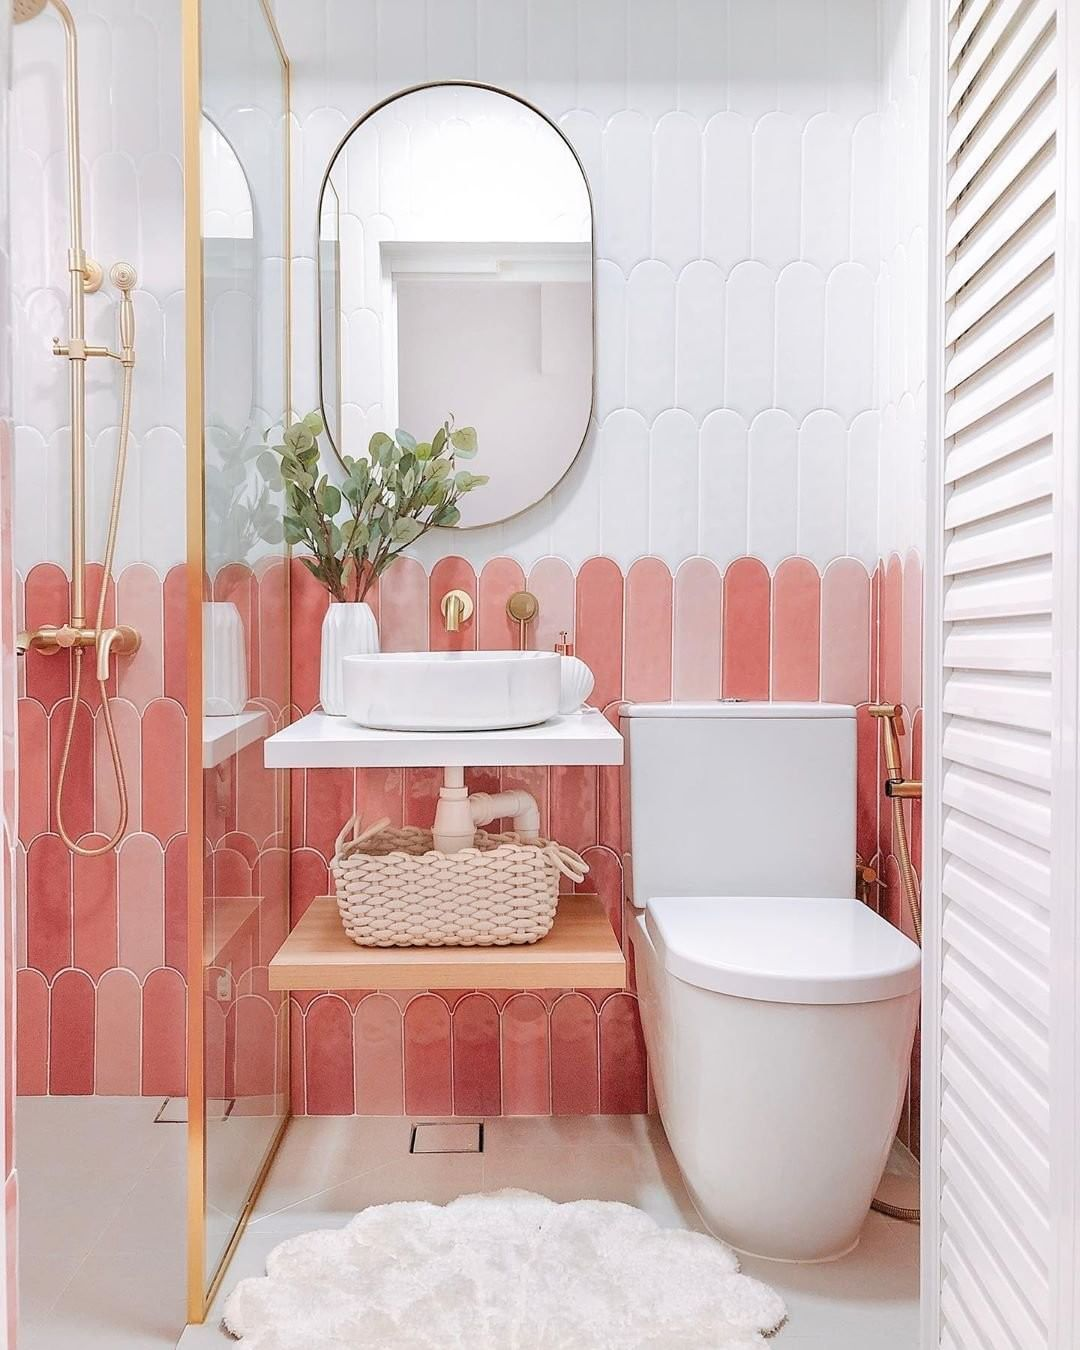 This tiny bathroom is giving us all the positive Monday morning energy we need! (Design: @houseofchais; Renovation: @mjstc_sg). Click the image to try our free home design app.  (Keywords: bathroom remodel, small bathroom ideas, bathroom ideas, bathroom decor, dream room, room ideas, bathroom painting ideas, bathroom shelf, bathroom color, bathroom organization ideas, bathtub, beautiful homes)